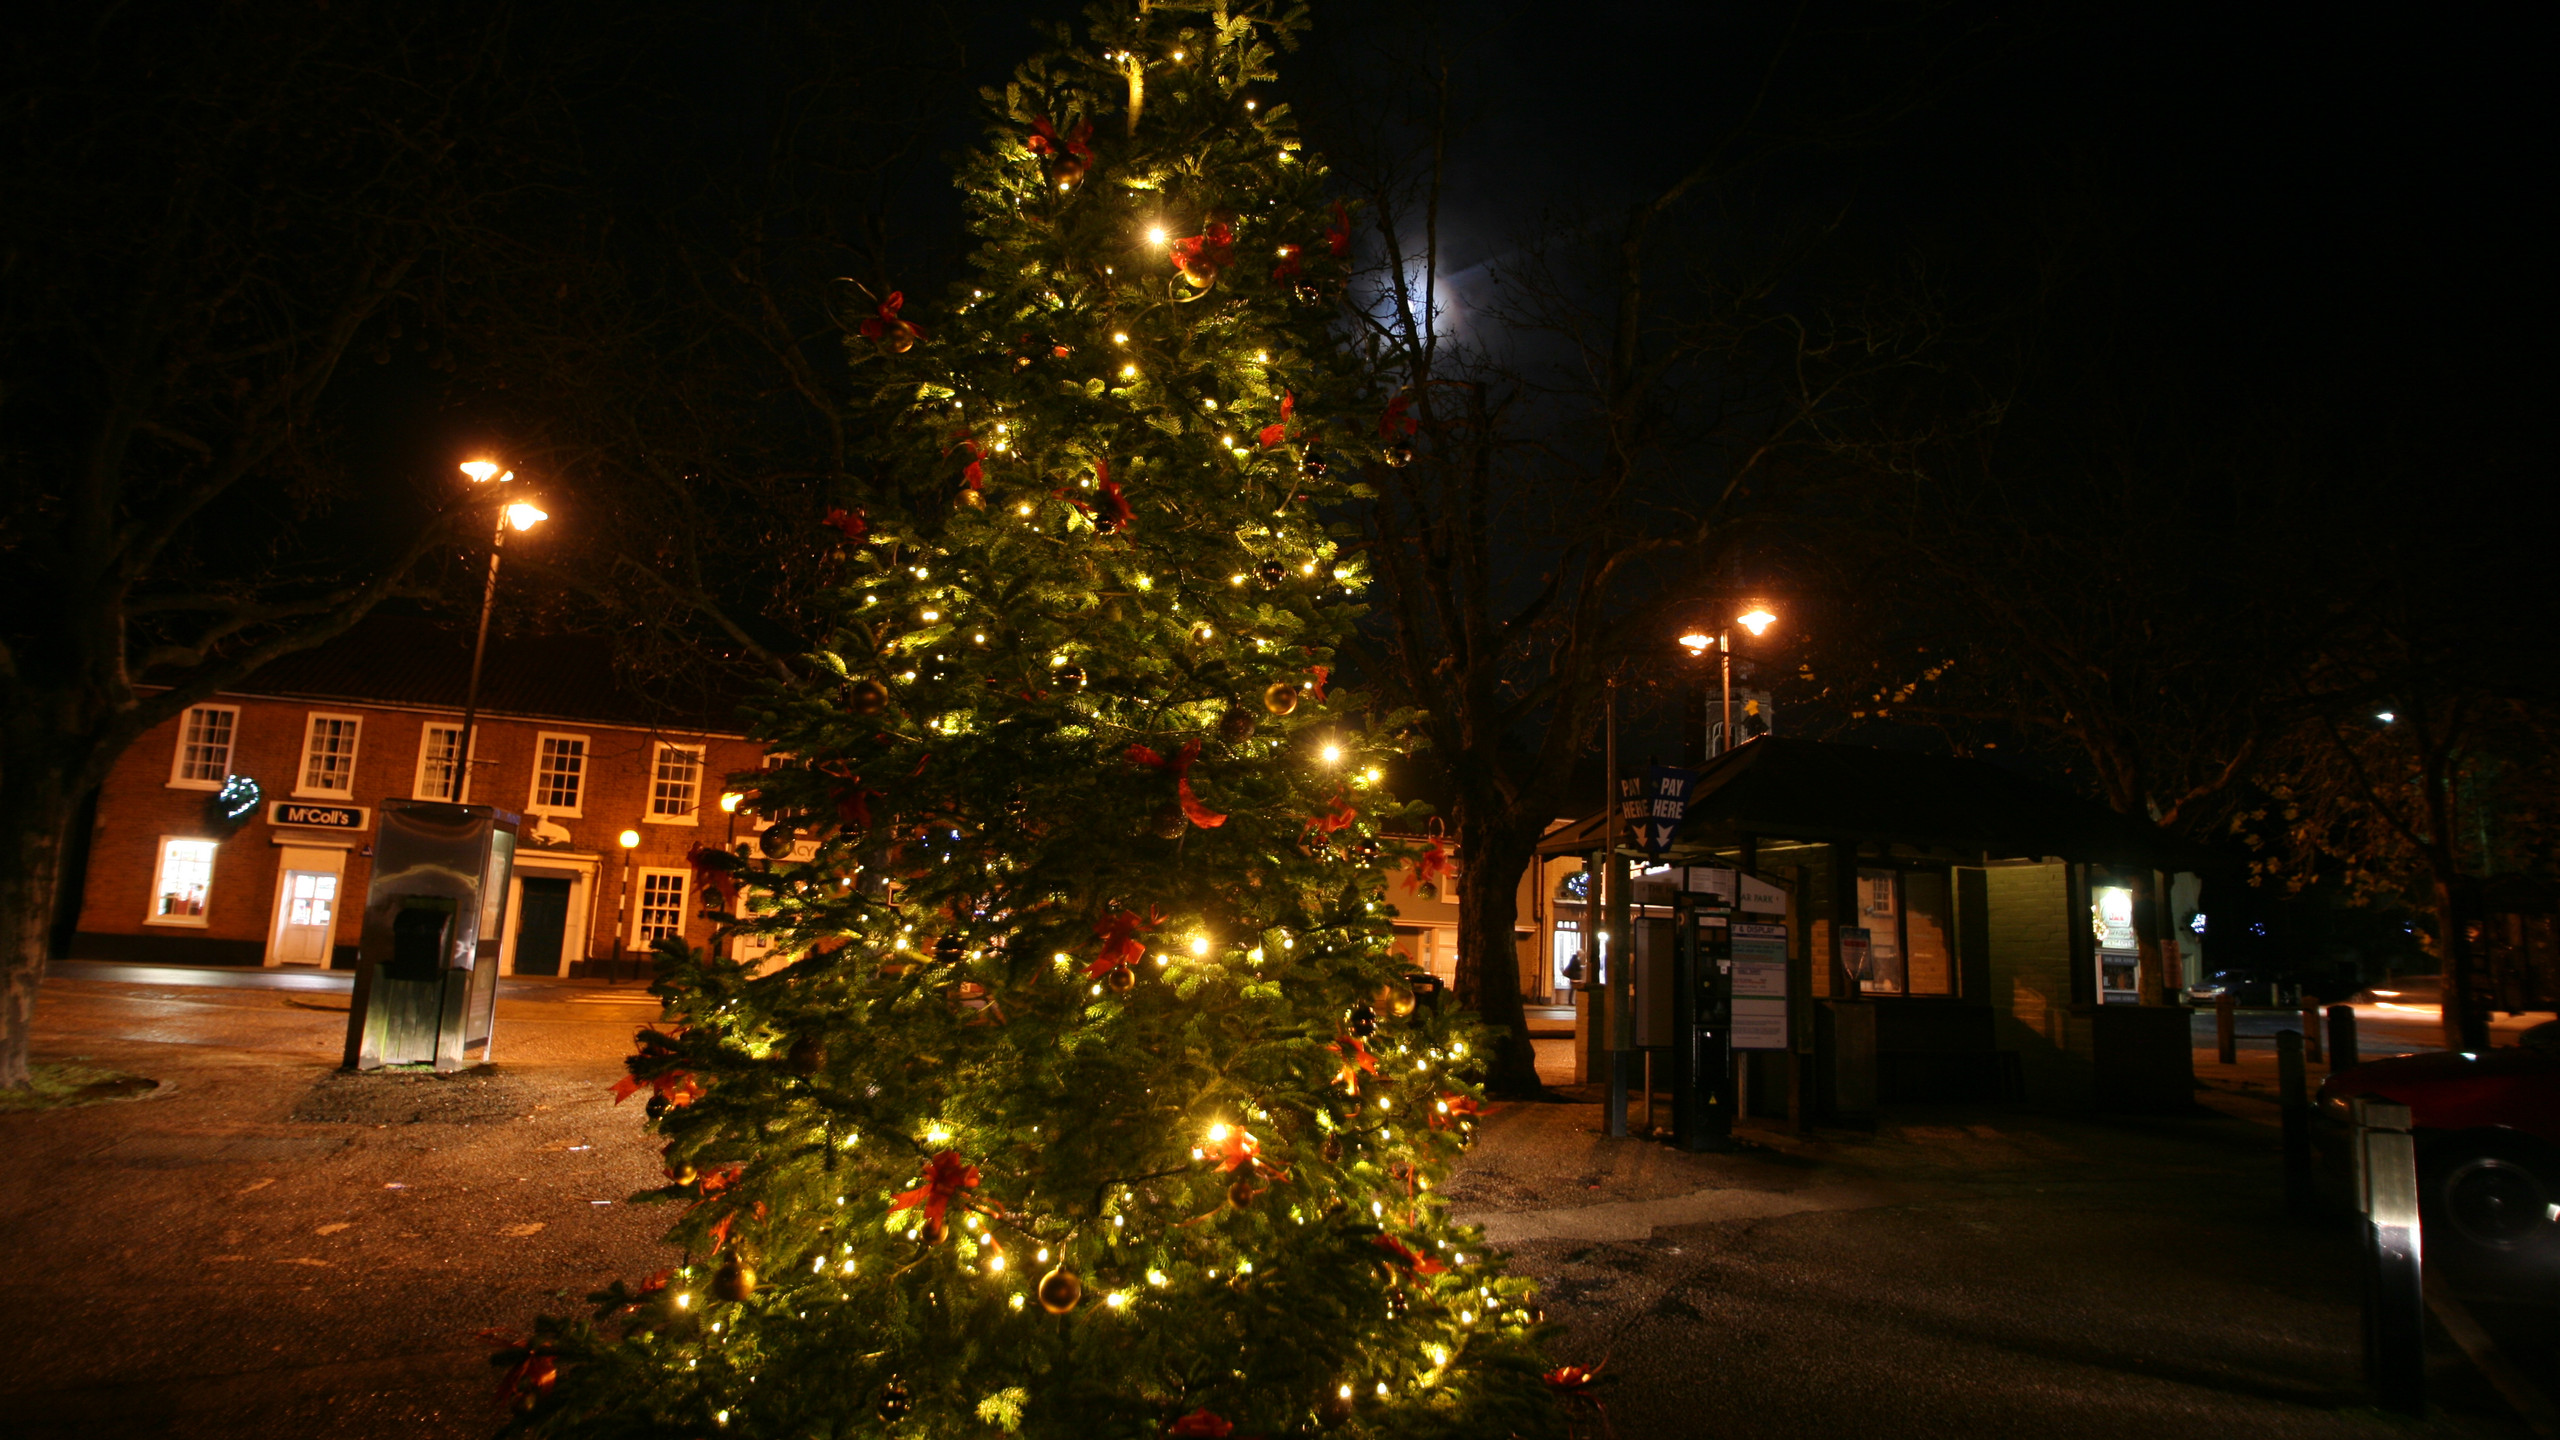 Christmas in Wickham Market